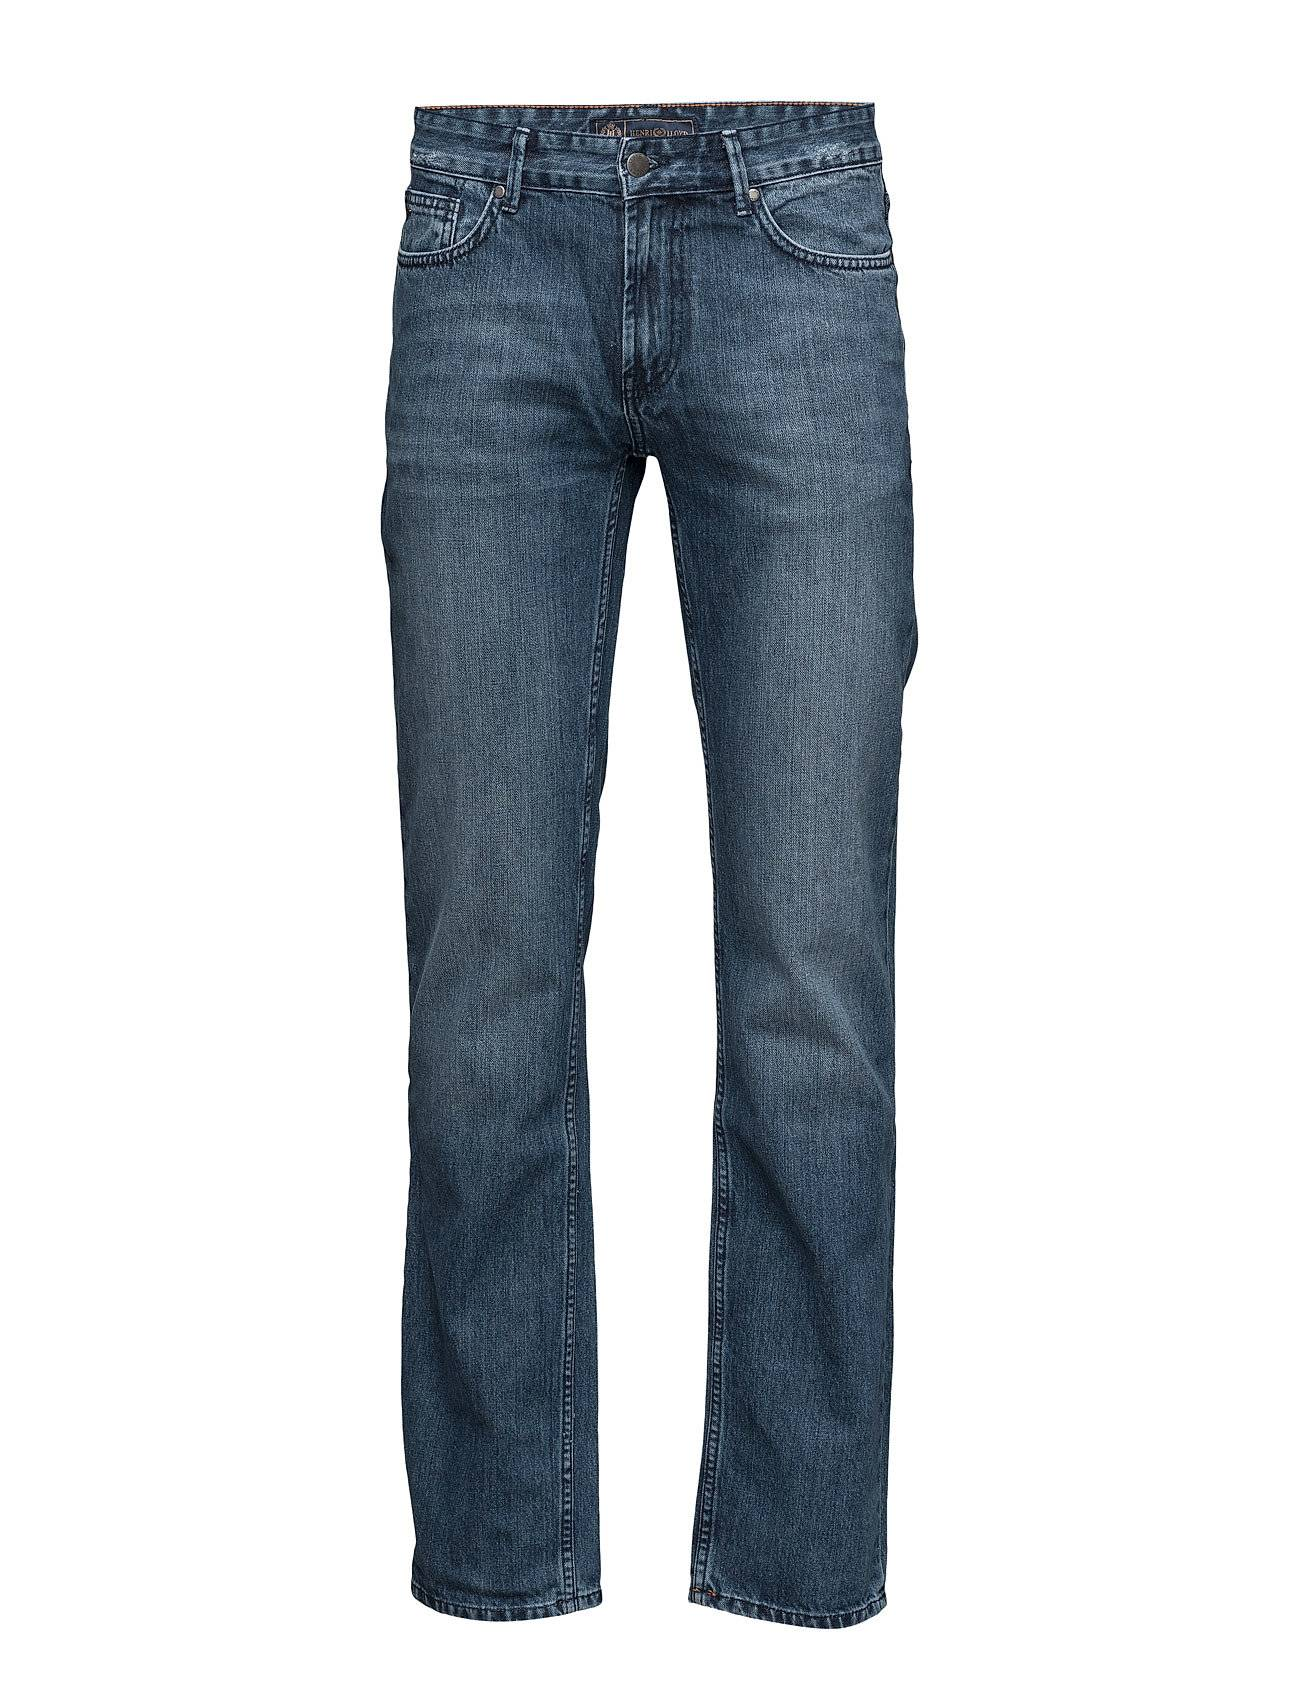 Henri Lloyd Harris Denim Regular Fit